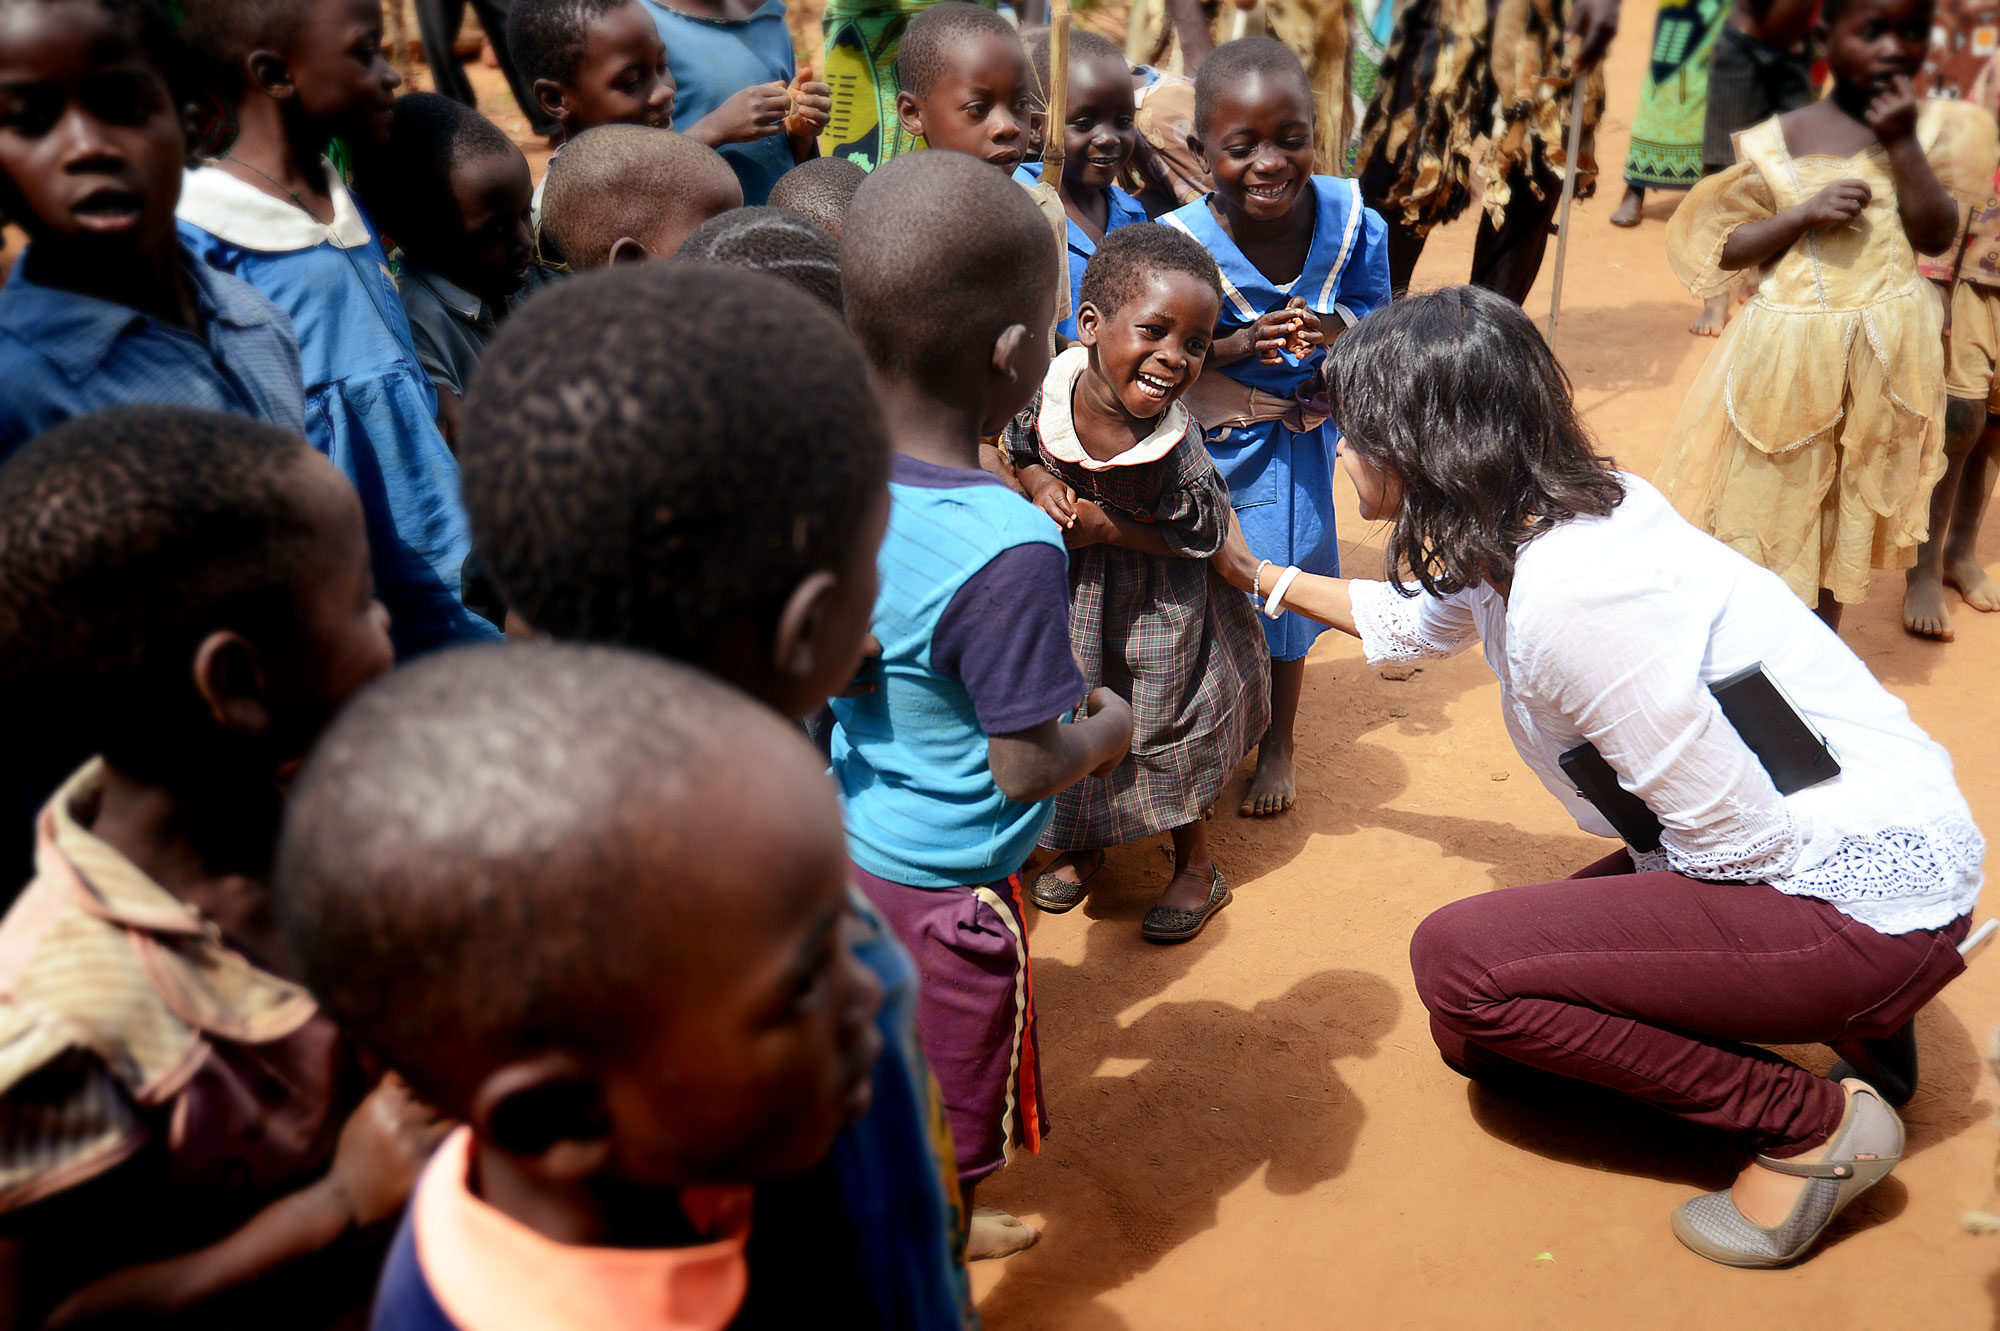 My friend     Ana Flores     making friends in     Malawi    , May 2015.